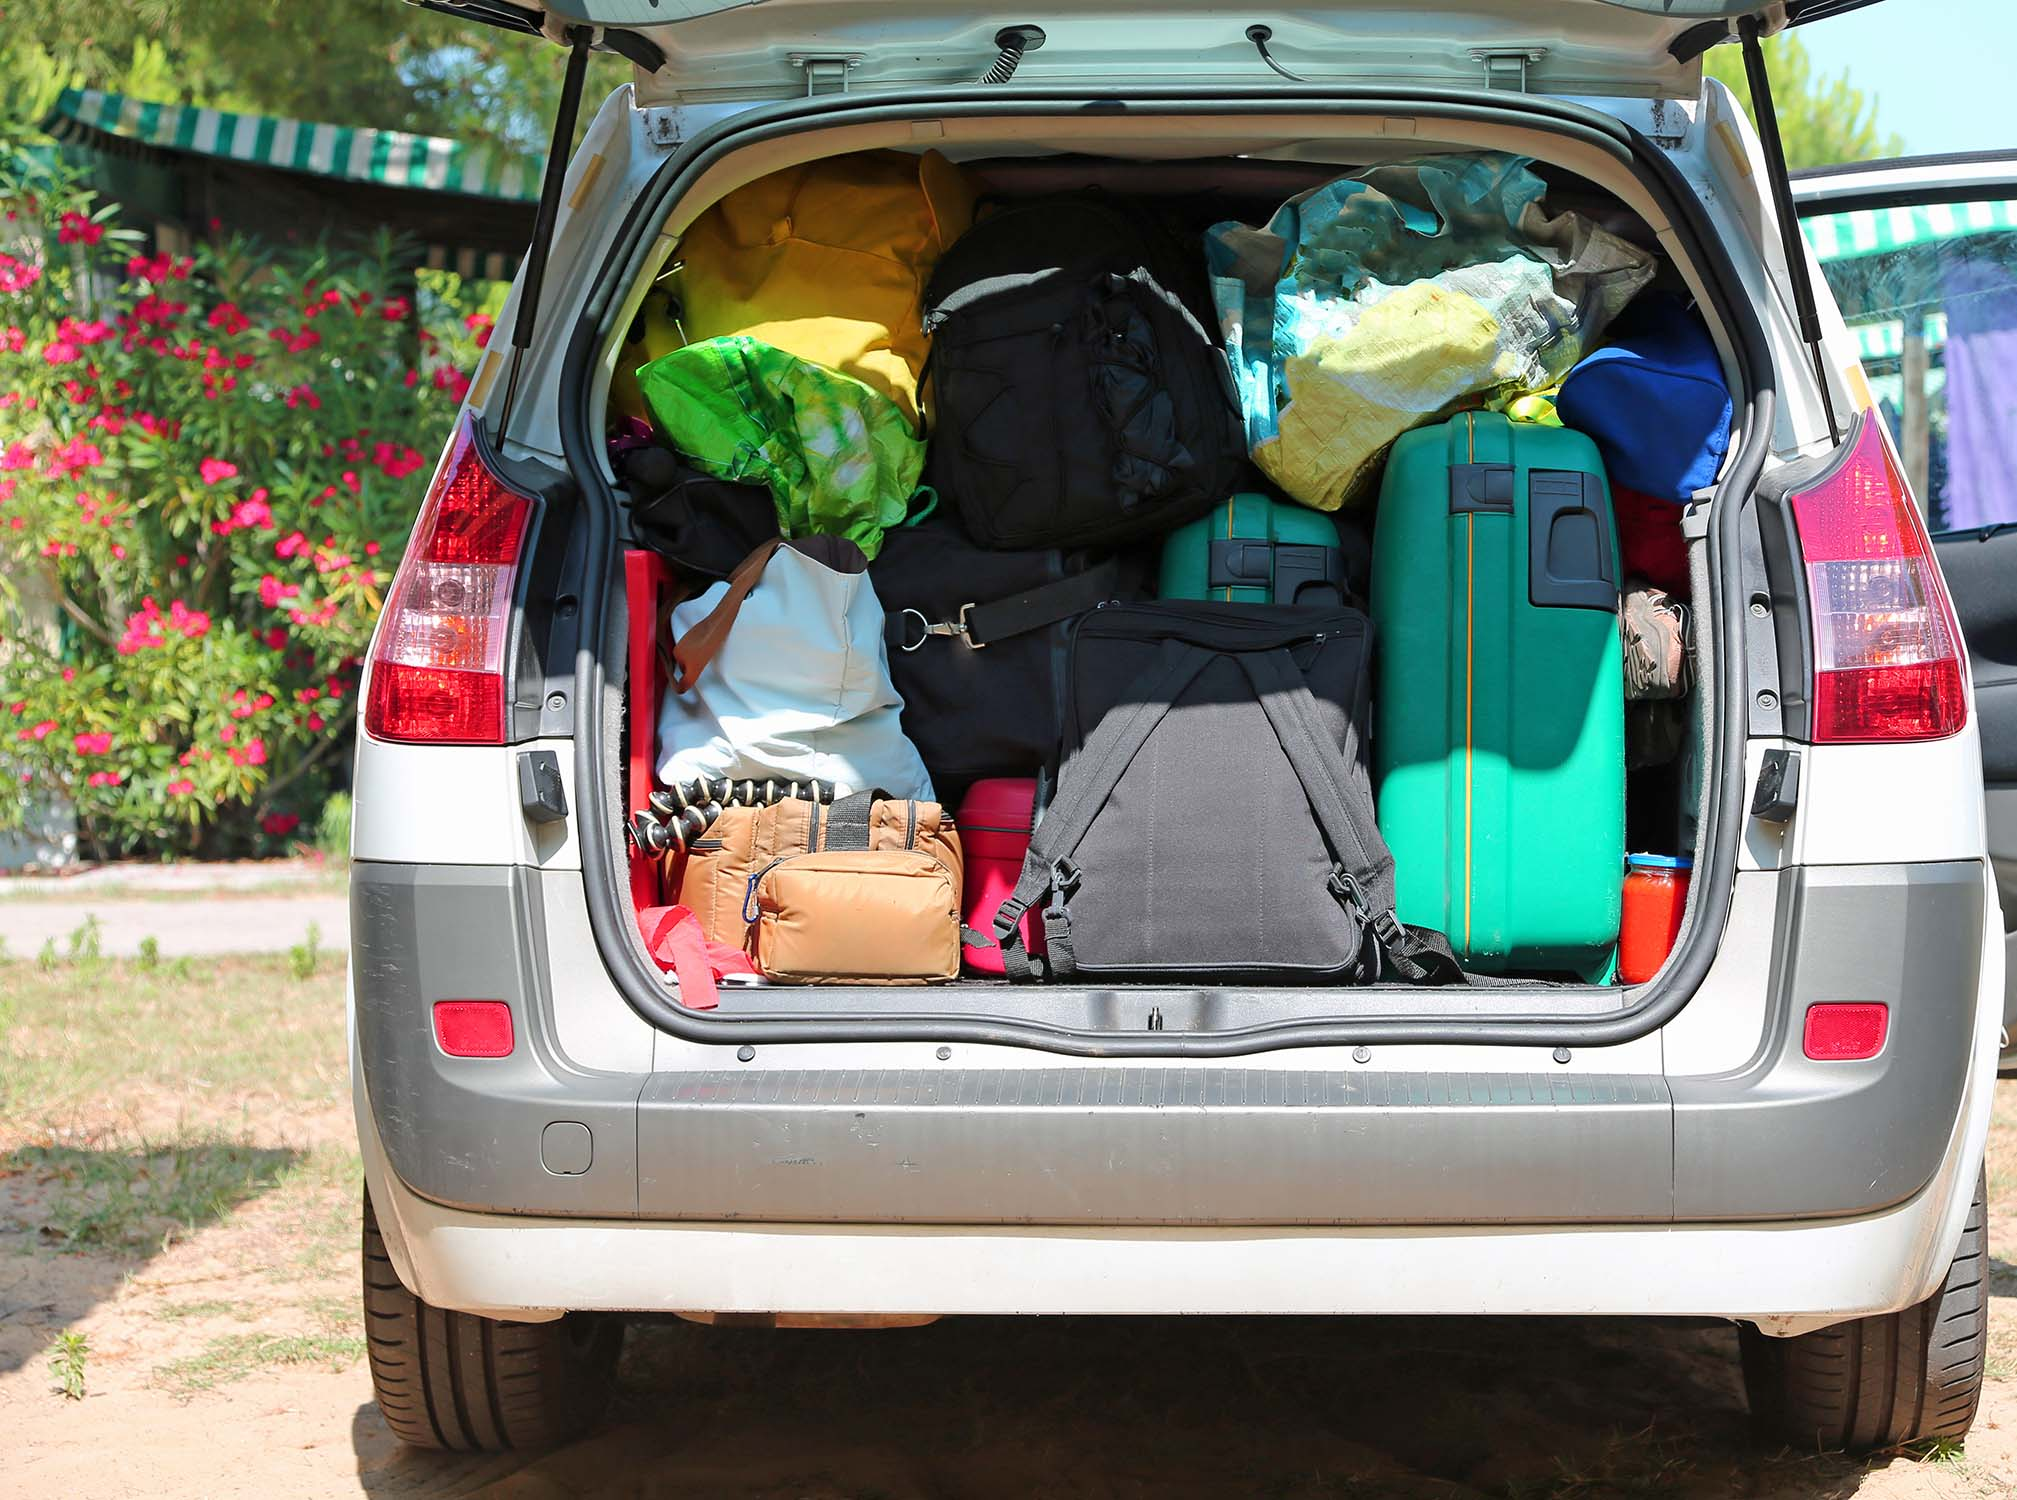 luggage and suitcases in car for departure